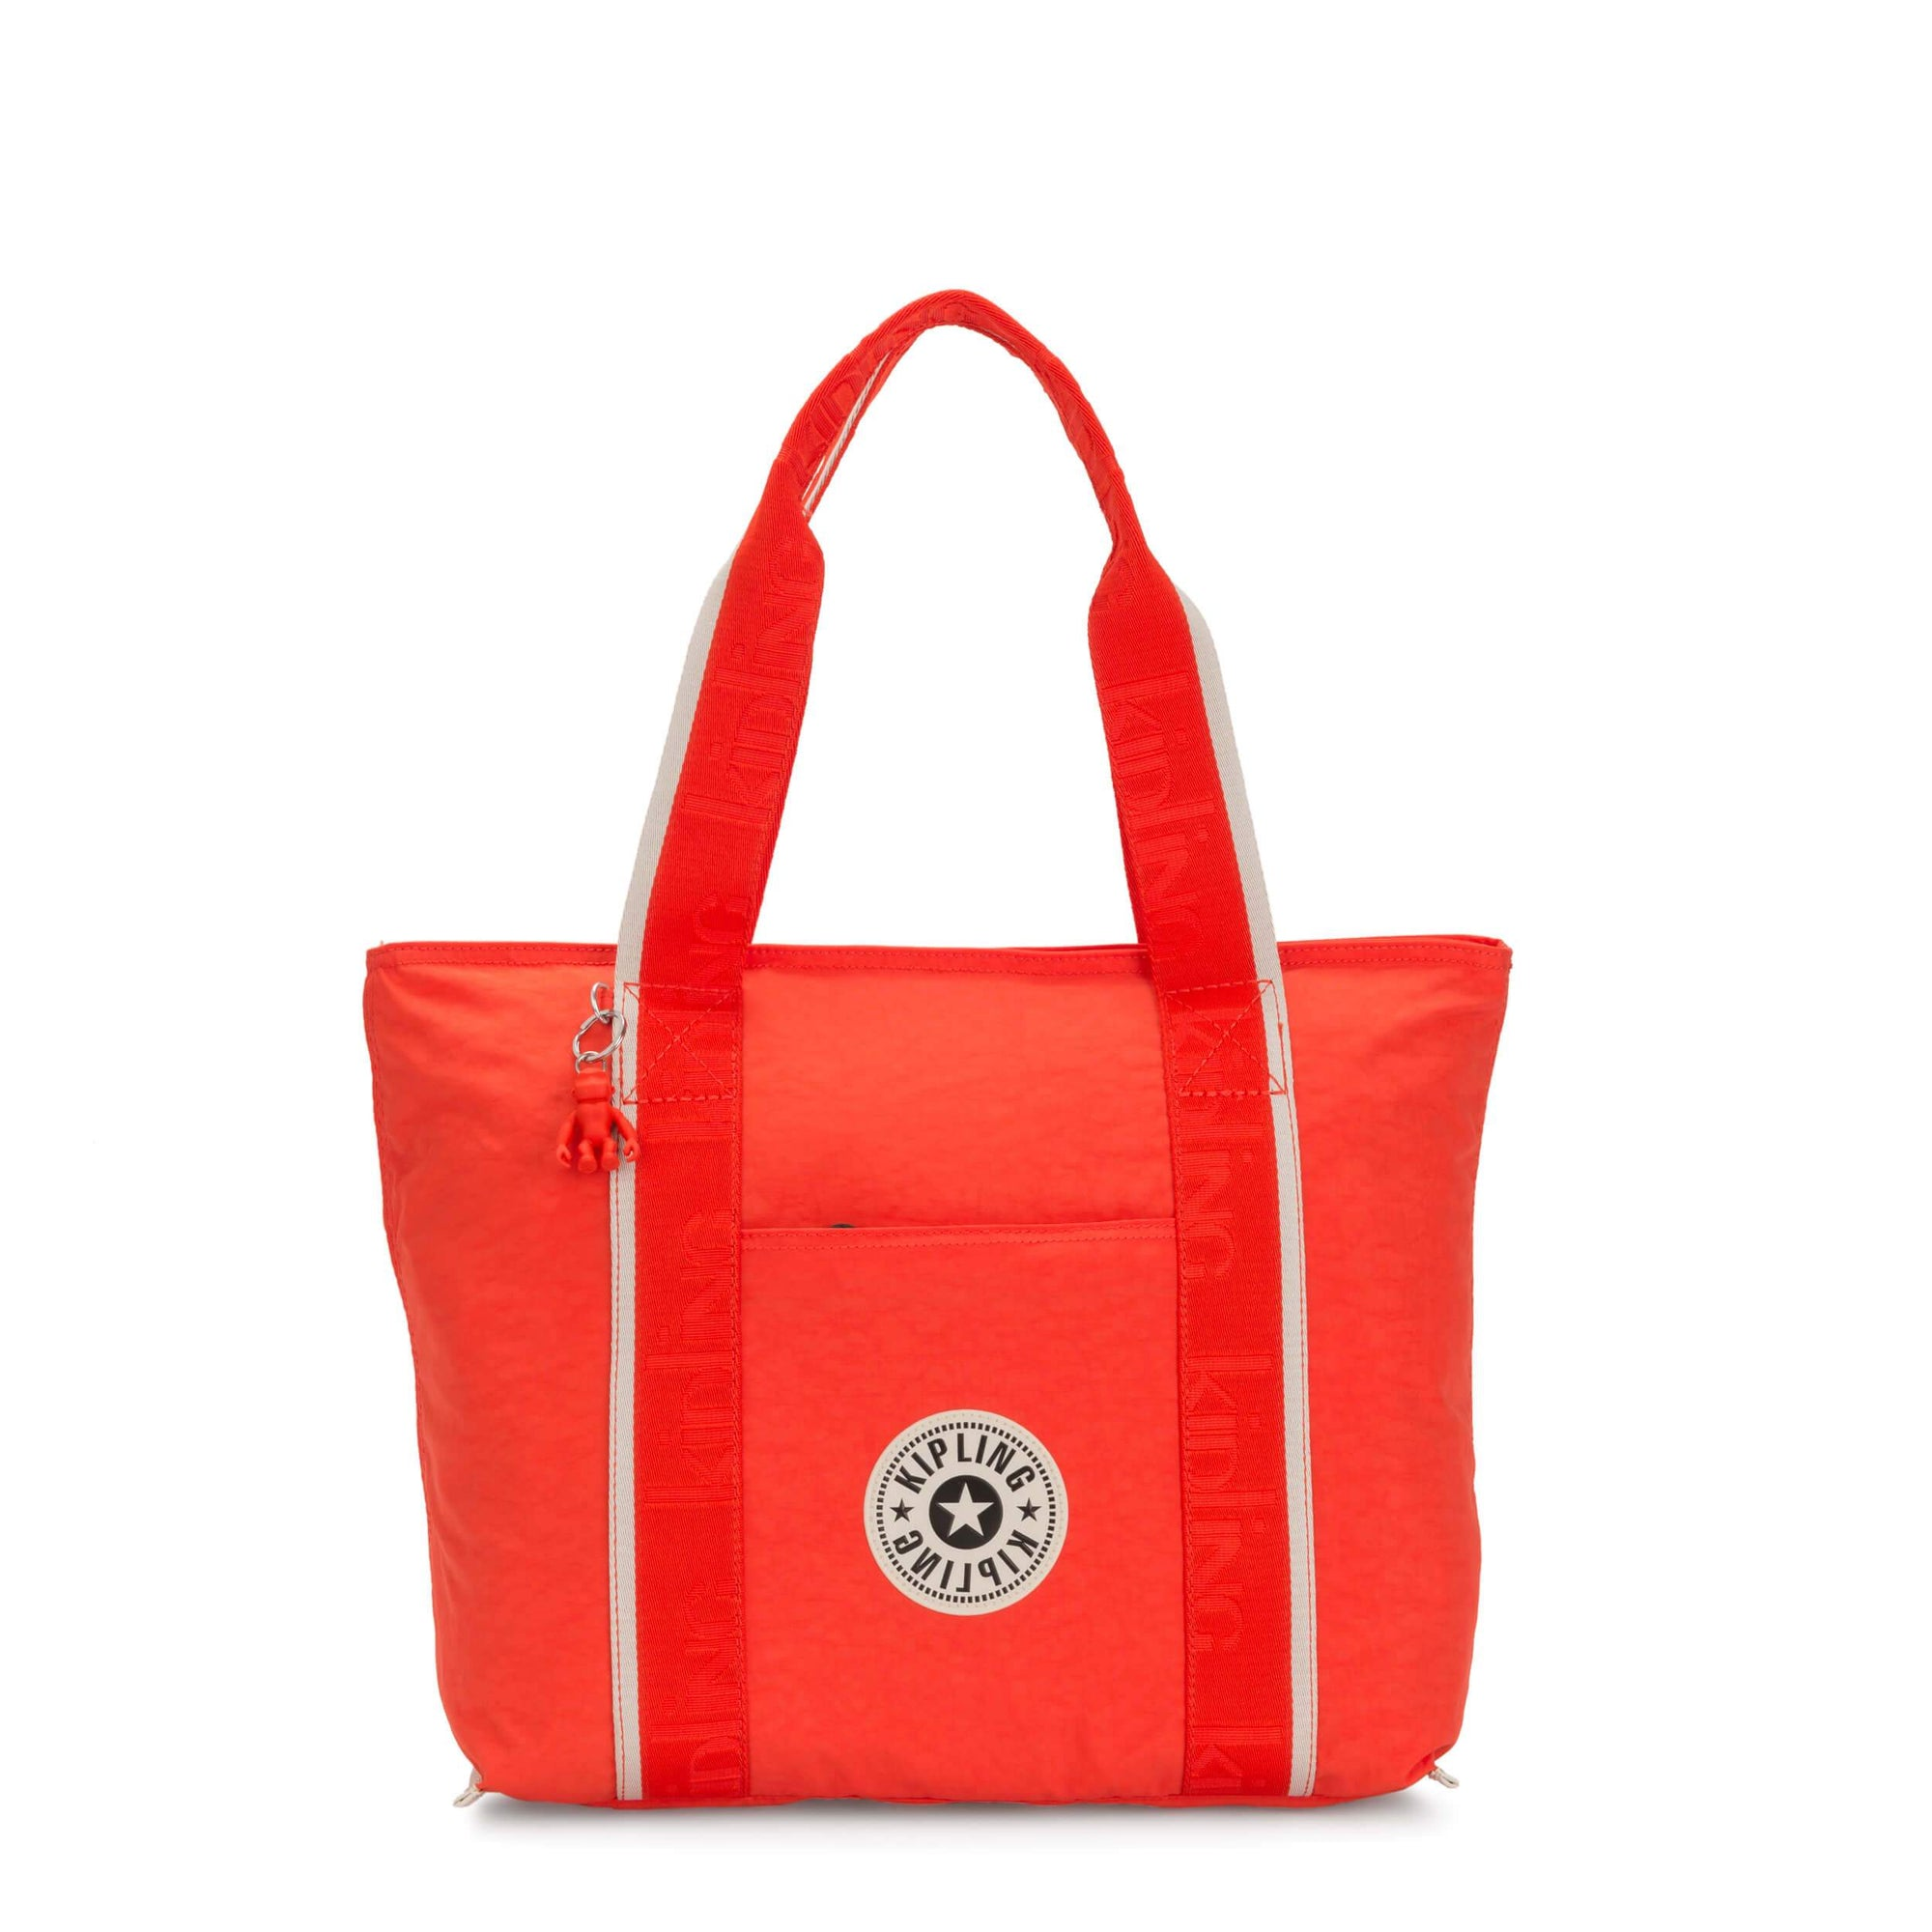 Bolsa Kipling Era M Rapid Red C KI6768K75